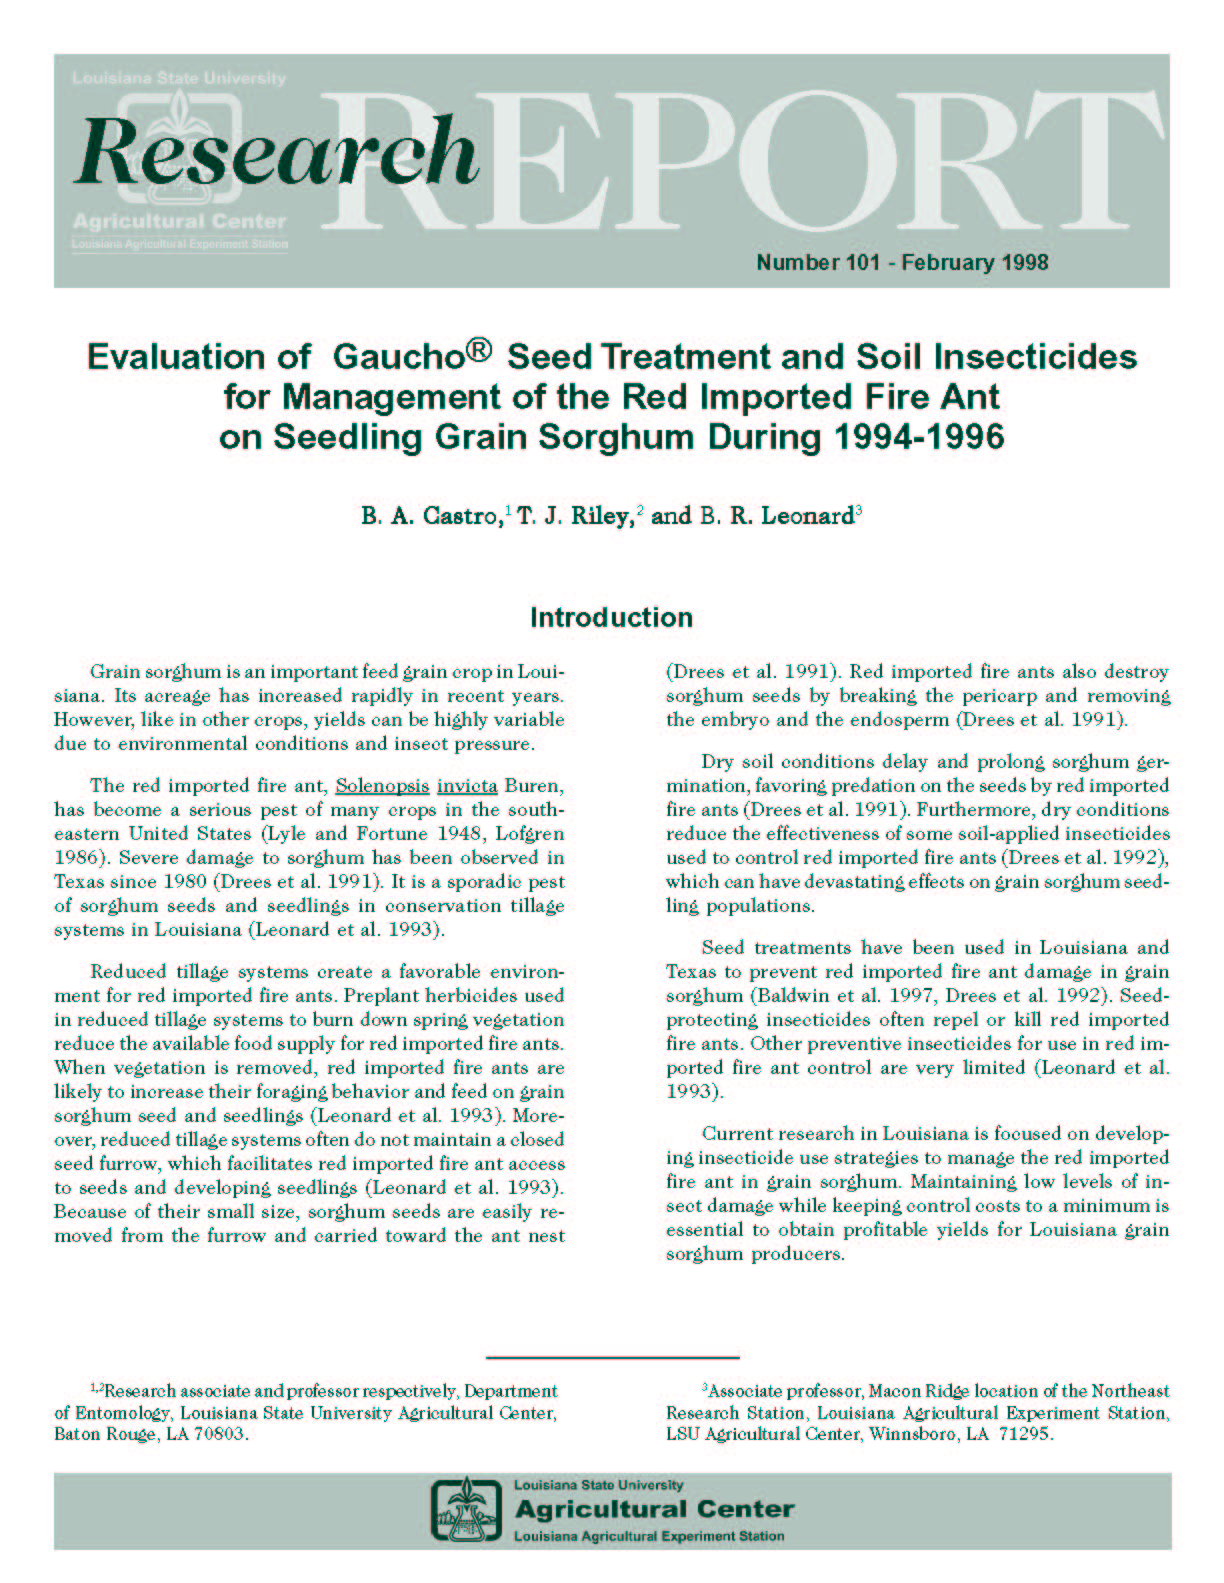 Evaluation of Gaucho Seed Treatment and Soil Insecticides for Management of the Red Imported Fire Ant on Seedling Grain Sorghum During 1994-1996 (February 1998)